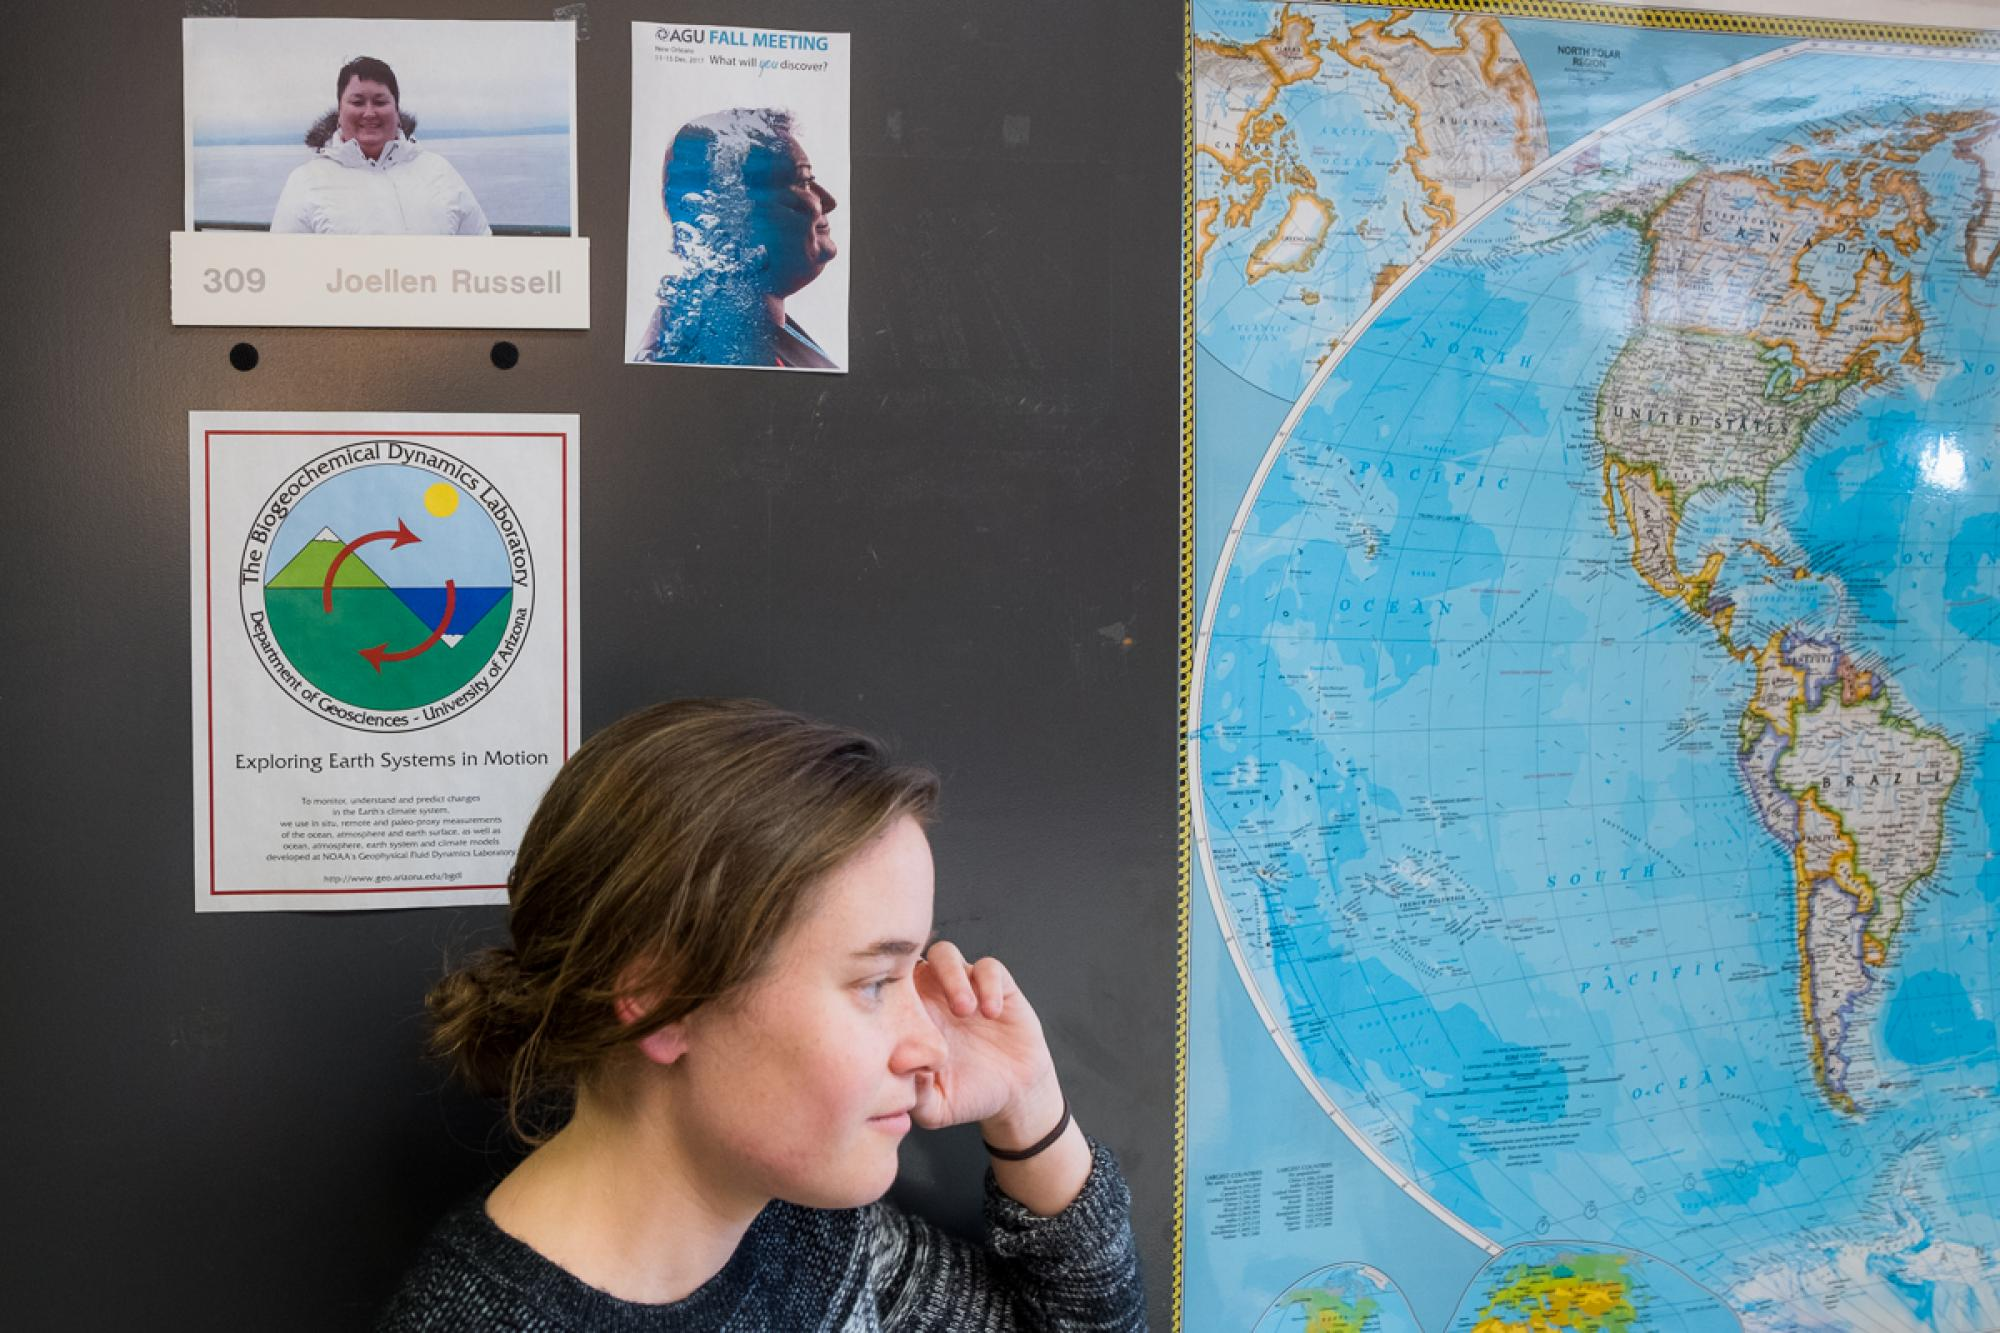 Becki Beadling, a graduate student in geosciences, has gone to the ends of the Earth for science in her work with Joellen Russell.